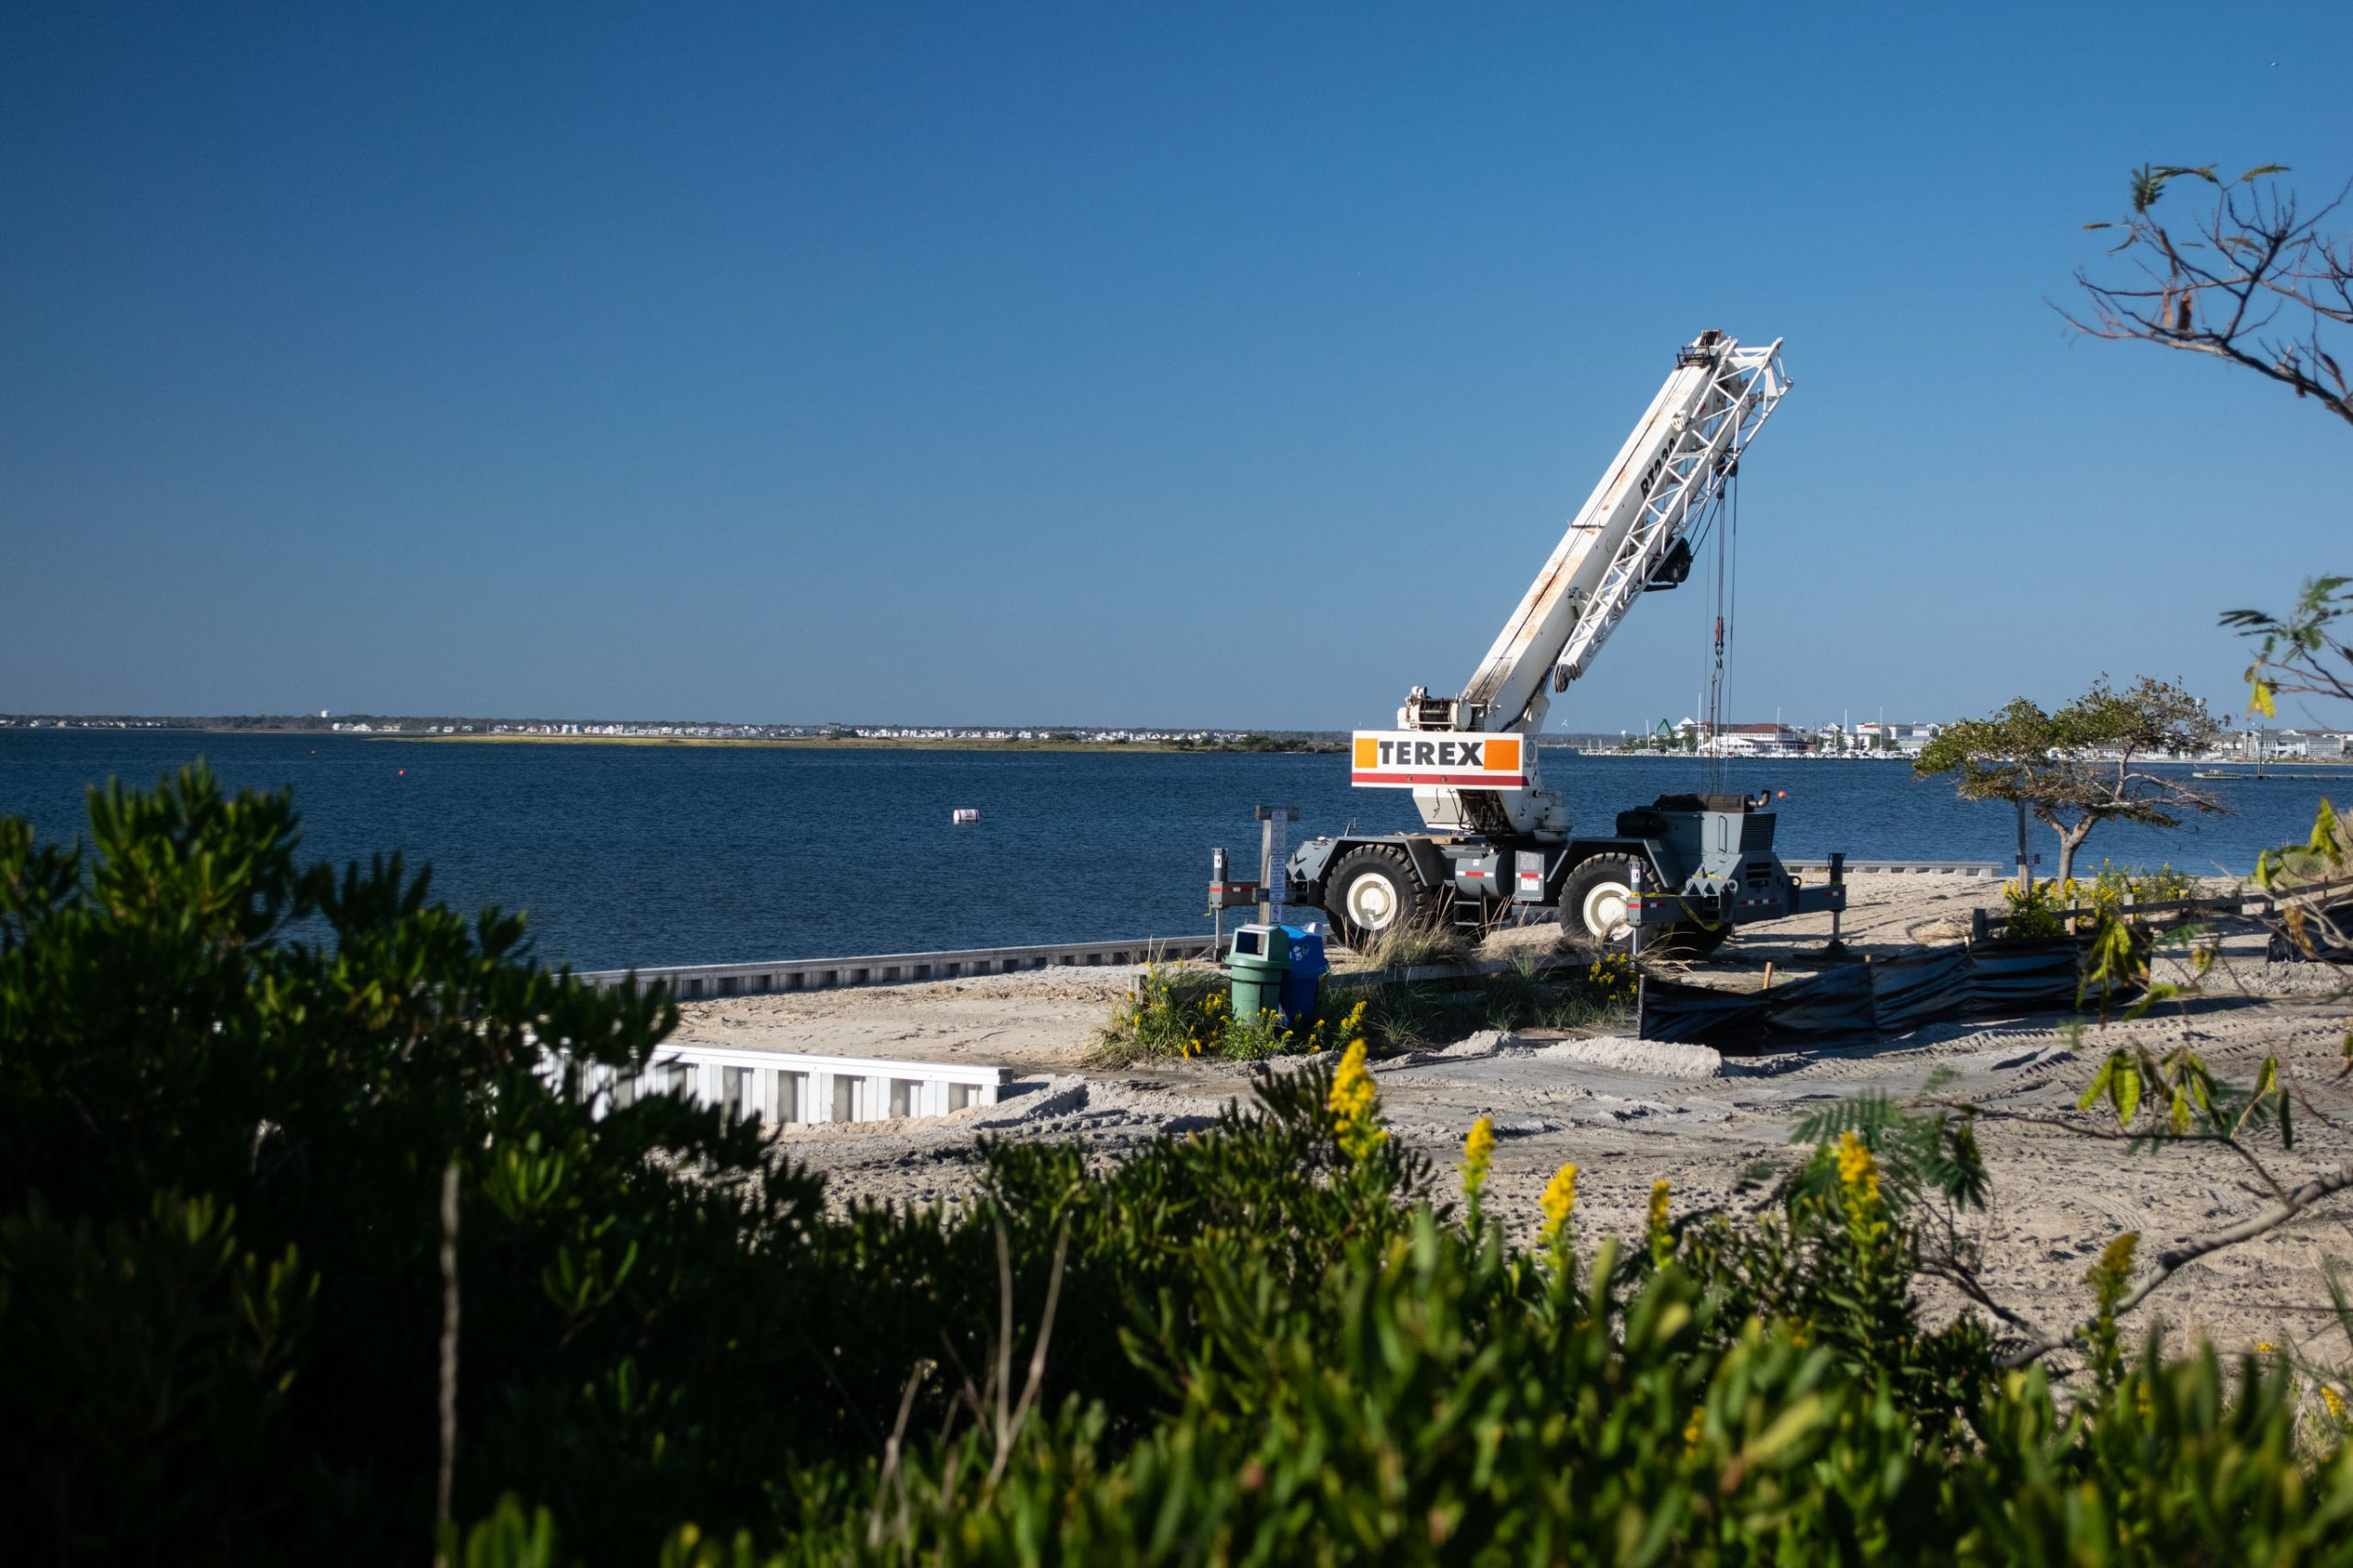 Construction near the Lavallette boat ramp and West Point Island. (Photo: Daniel Nee)